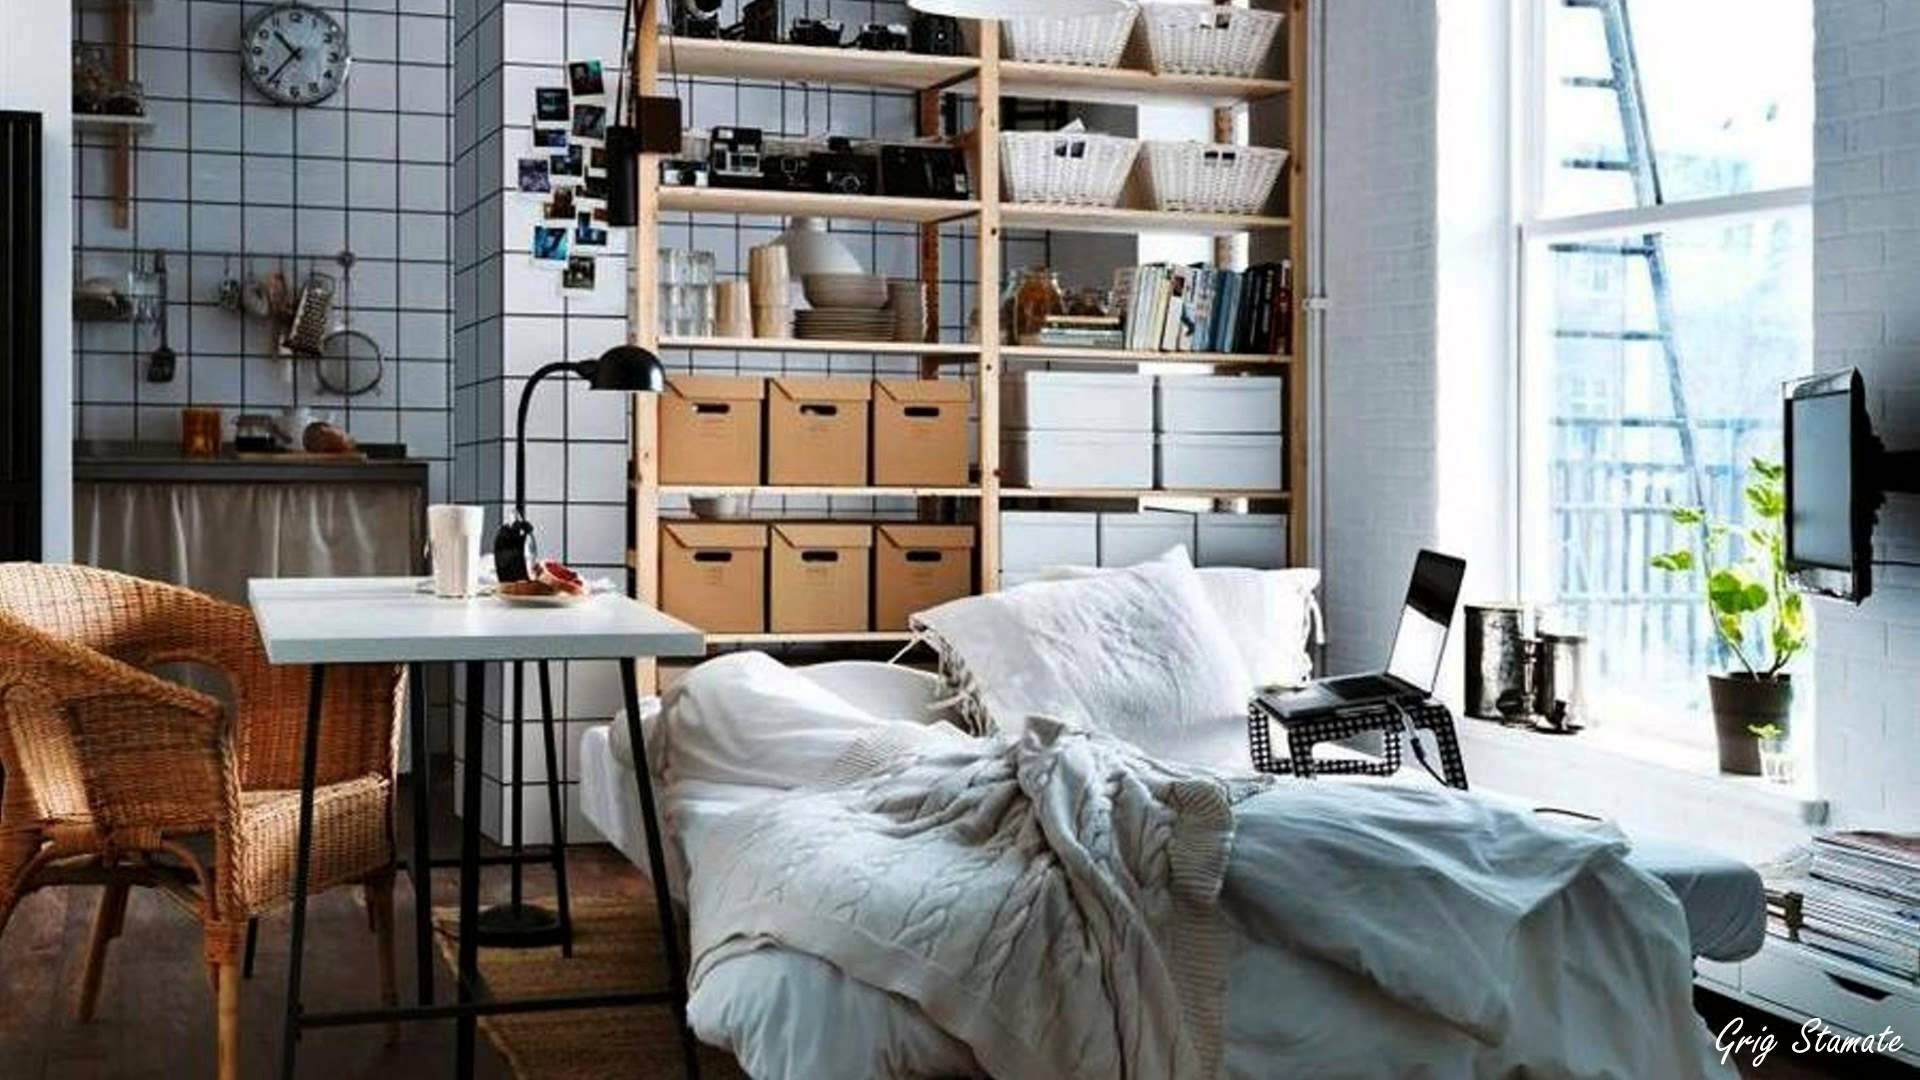 10 Gorgeous Organization Ideas For Small Apartments small apartment storage ideas theydesign intended for organizing 2021